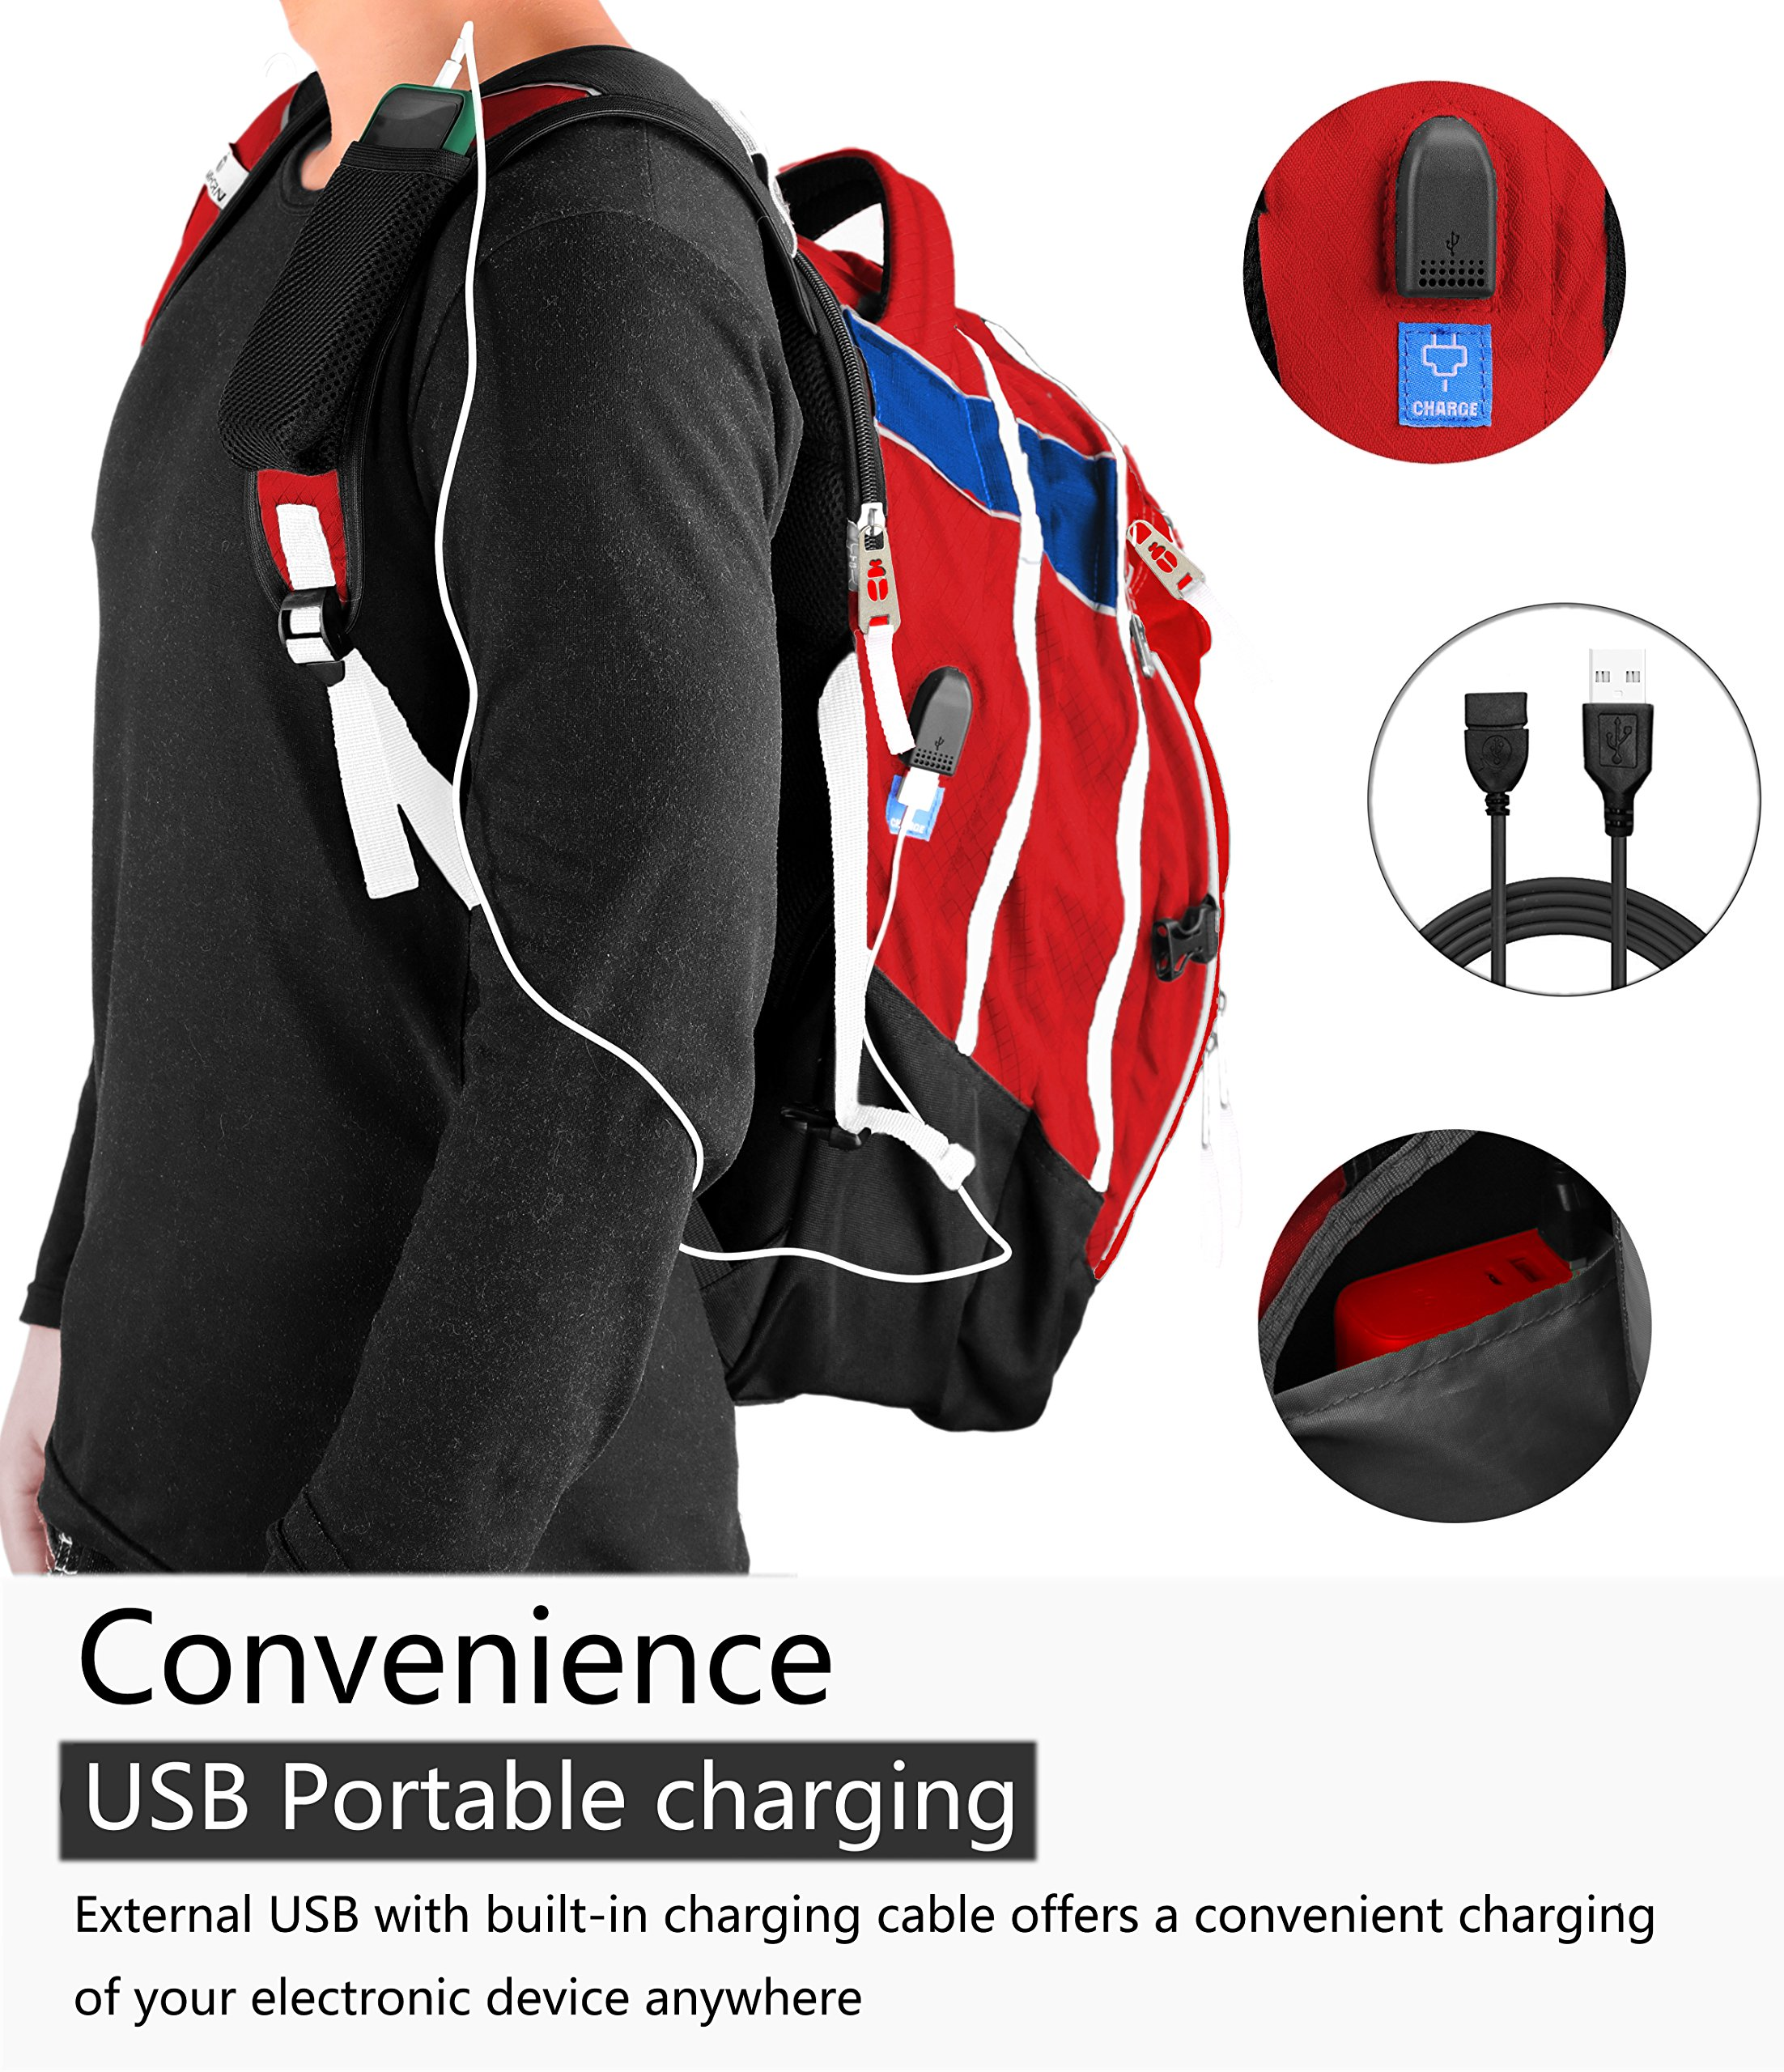 Laptop Backpack 15.6-Inch Business College Travel Computer Bag for Surface Water-Resistant Waterproof USB Charging Port Slim Light Weight Reflective Strip Rain Cover Large Capacity by Ramhorn(warmred) by Ramhorn (Image #3)